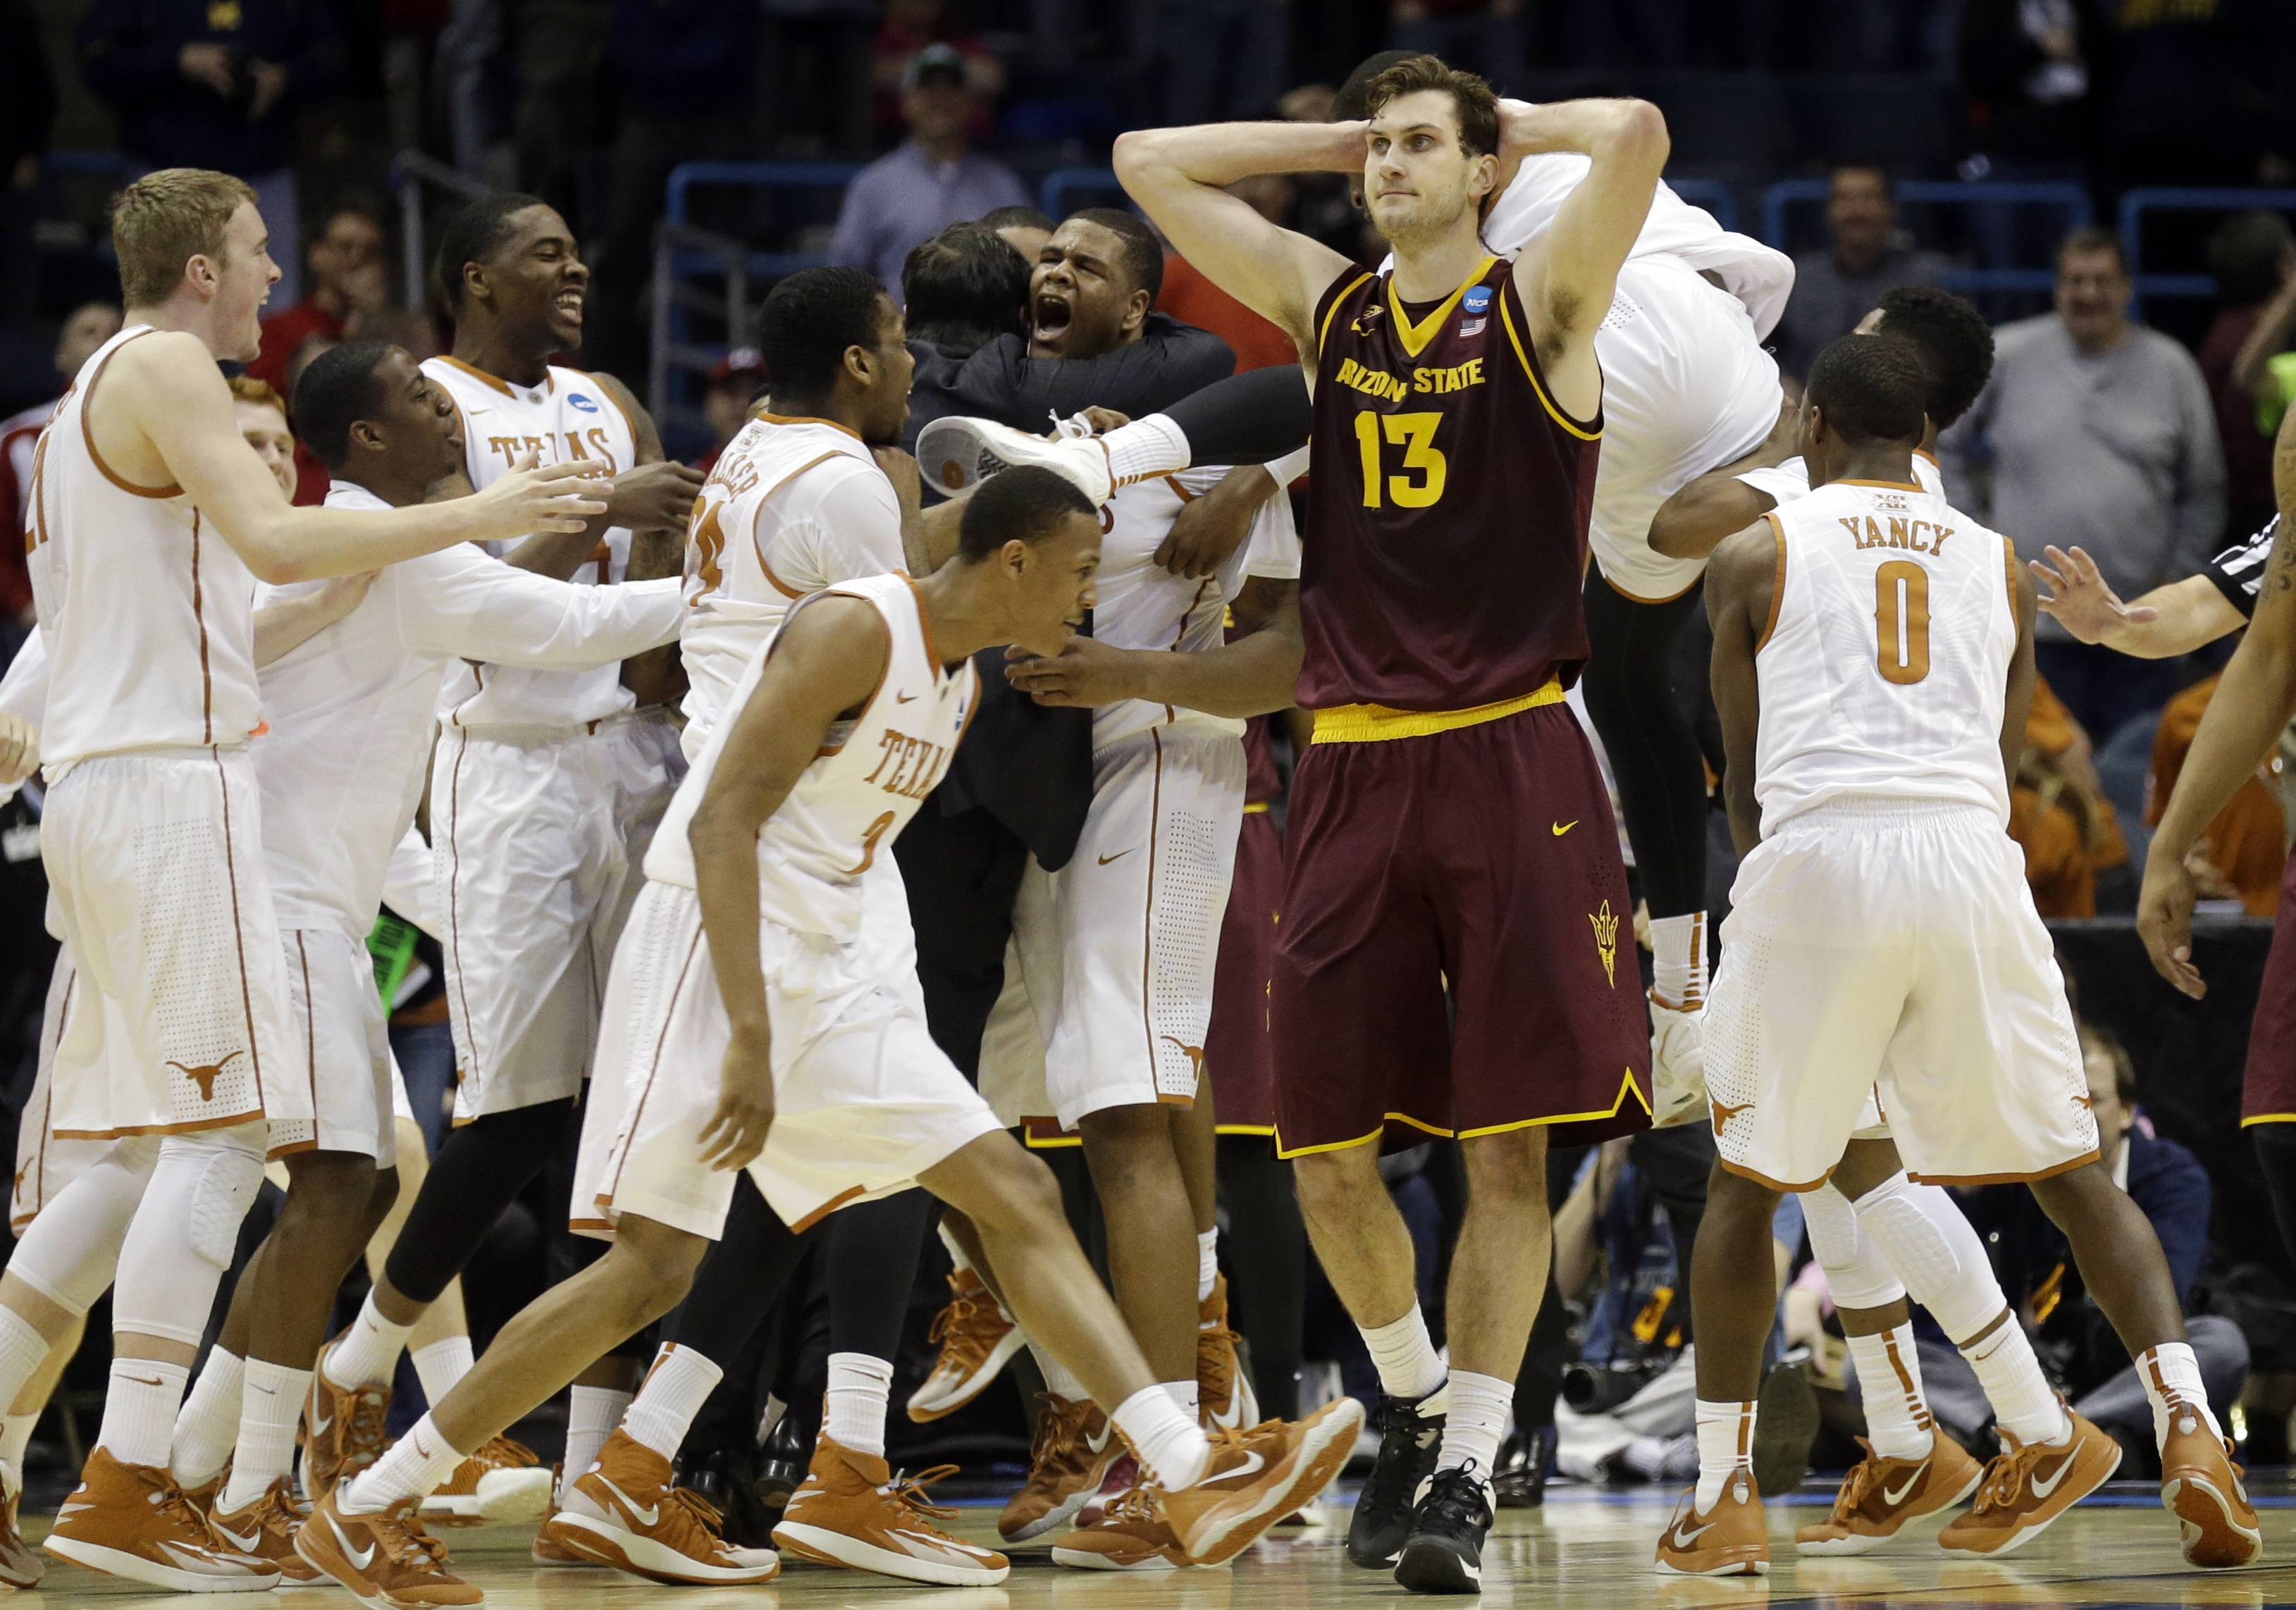 Texas shocks Arizona State on buzzer beater, 87-85